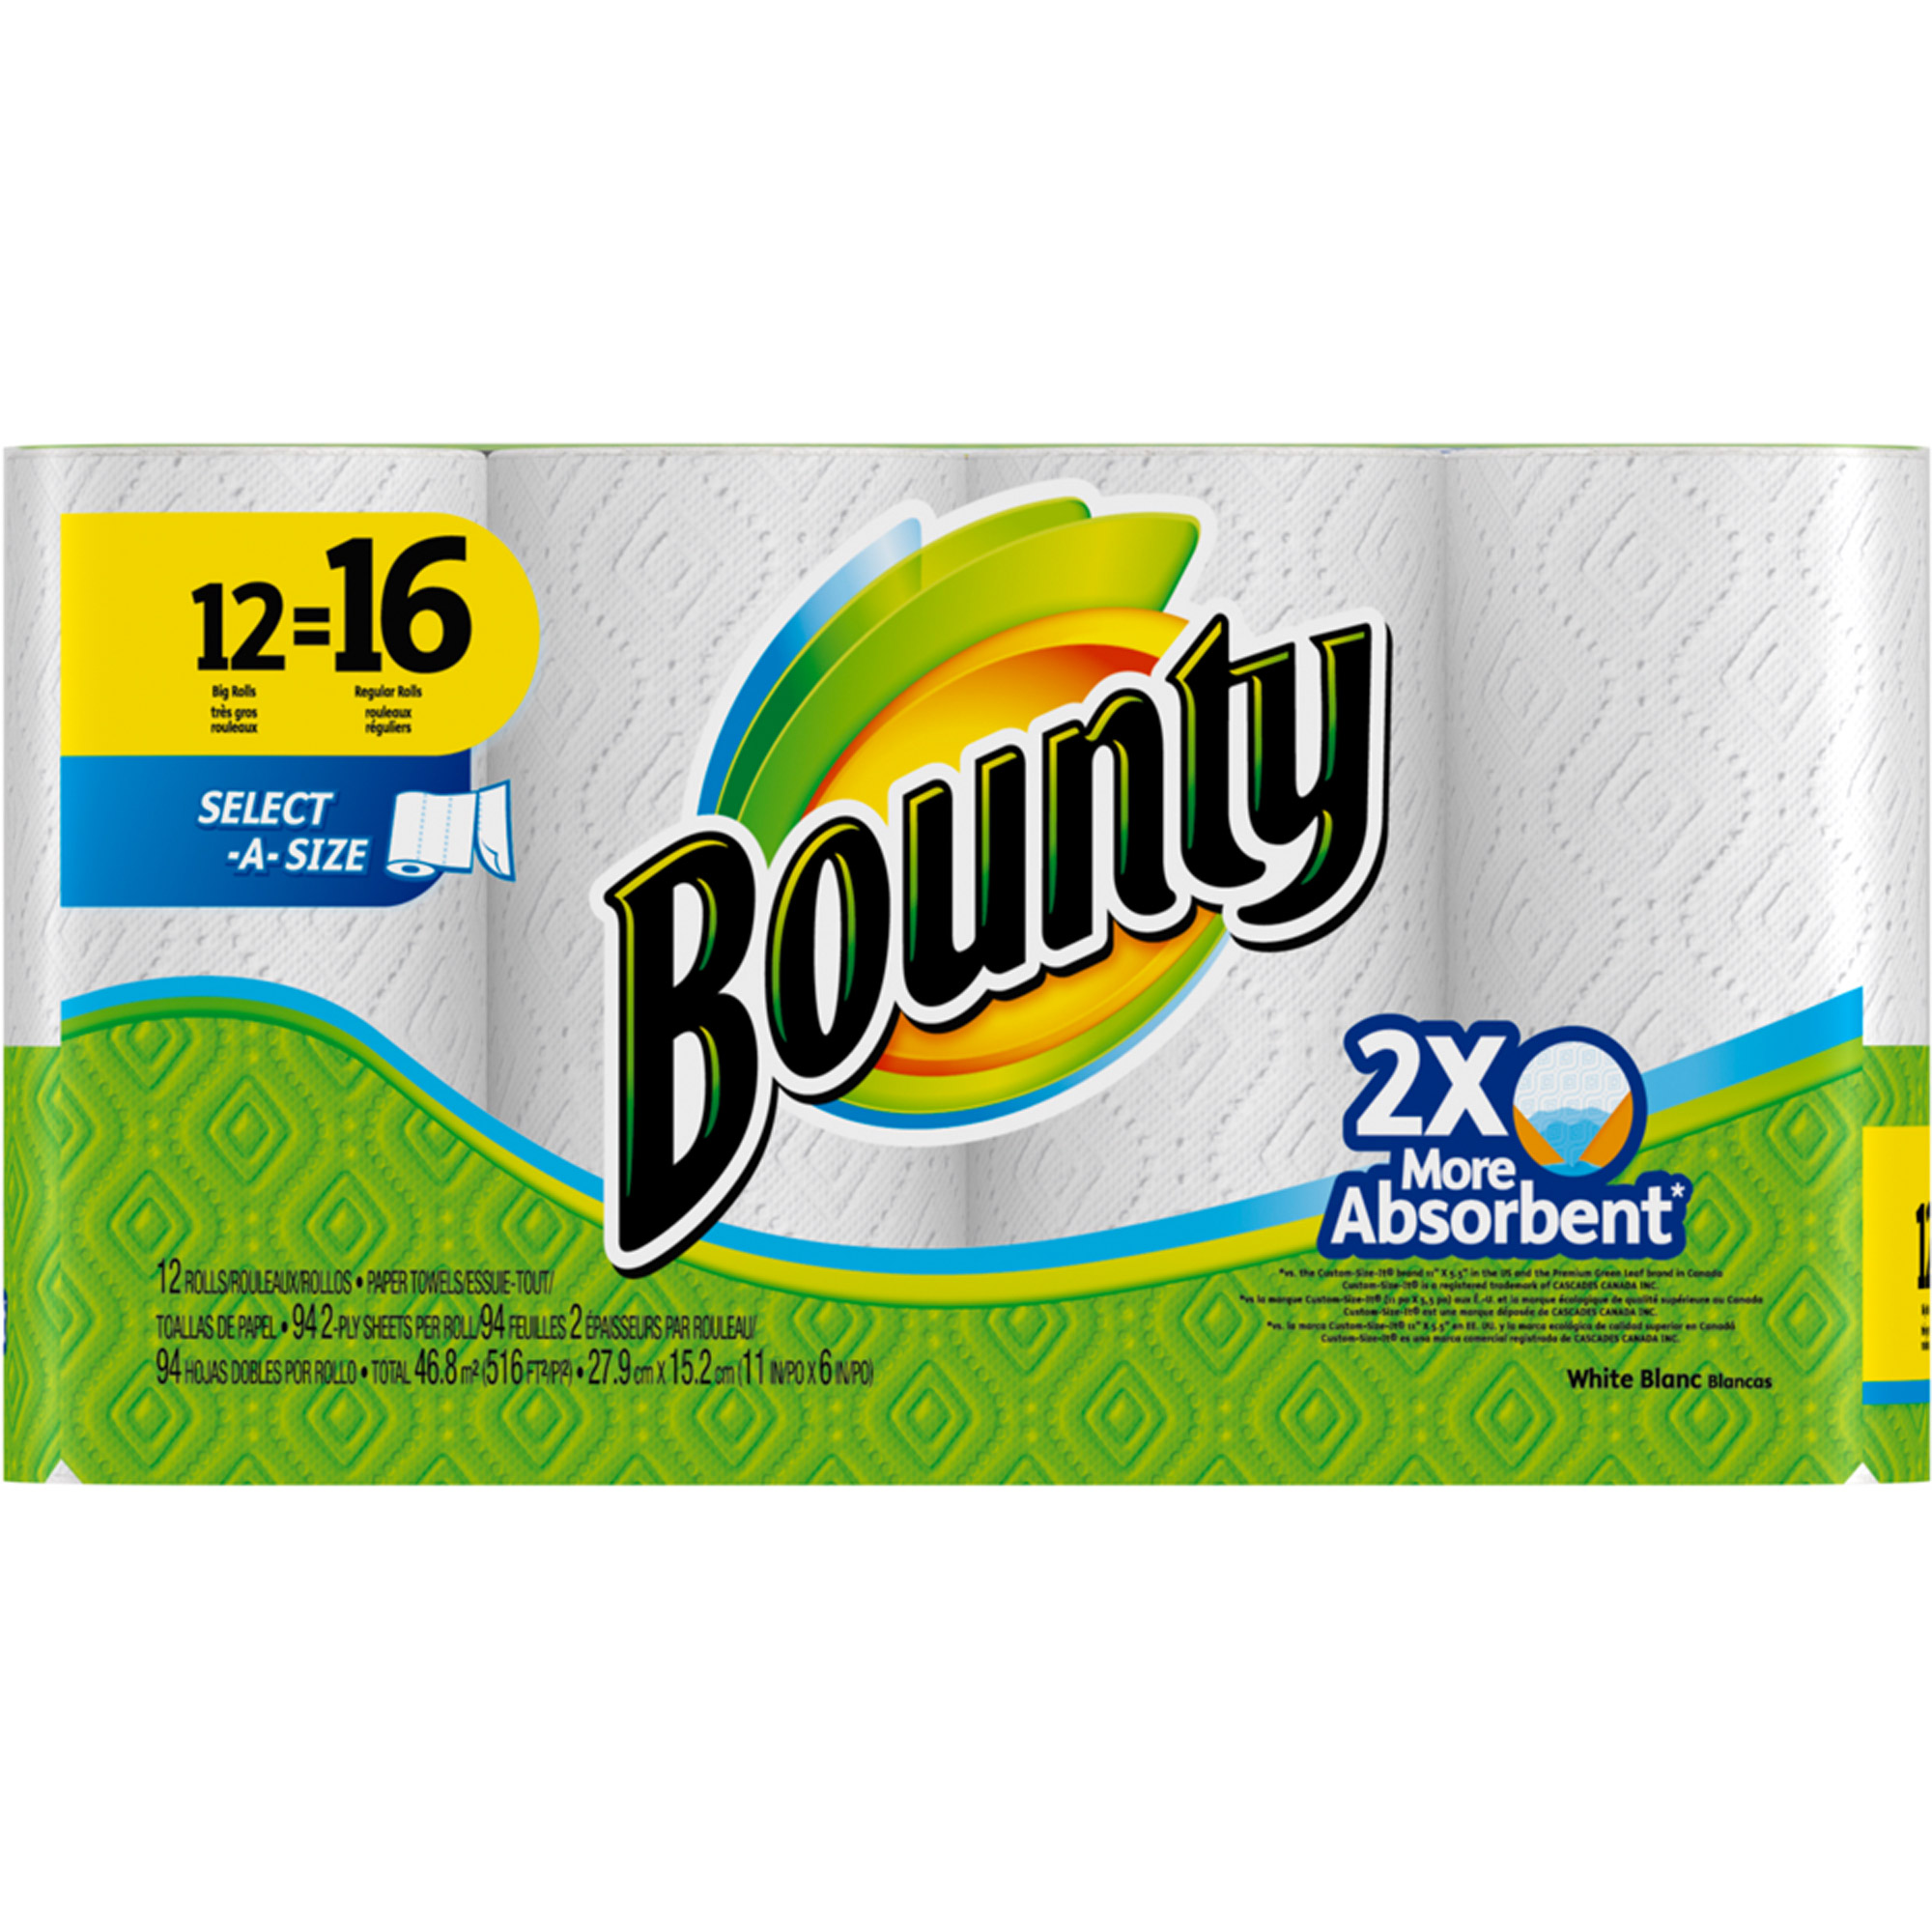 Bounty Select-A-Size Paper Towels, White, 12 Big Rolls